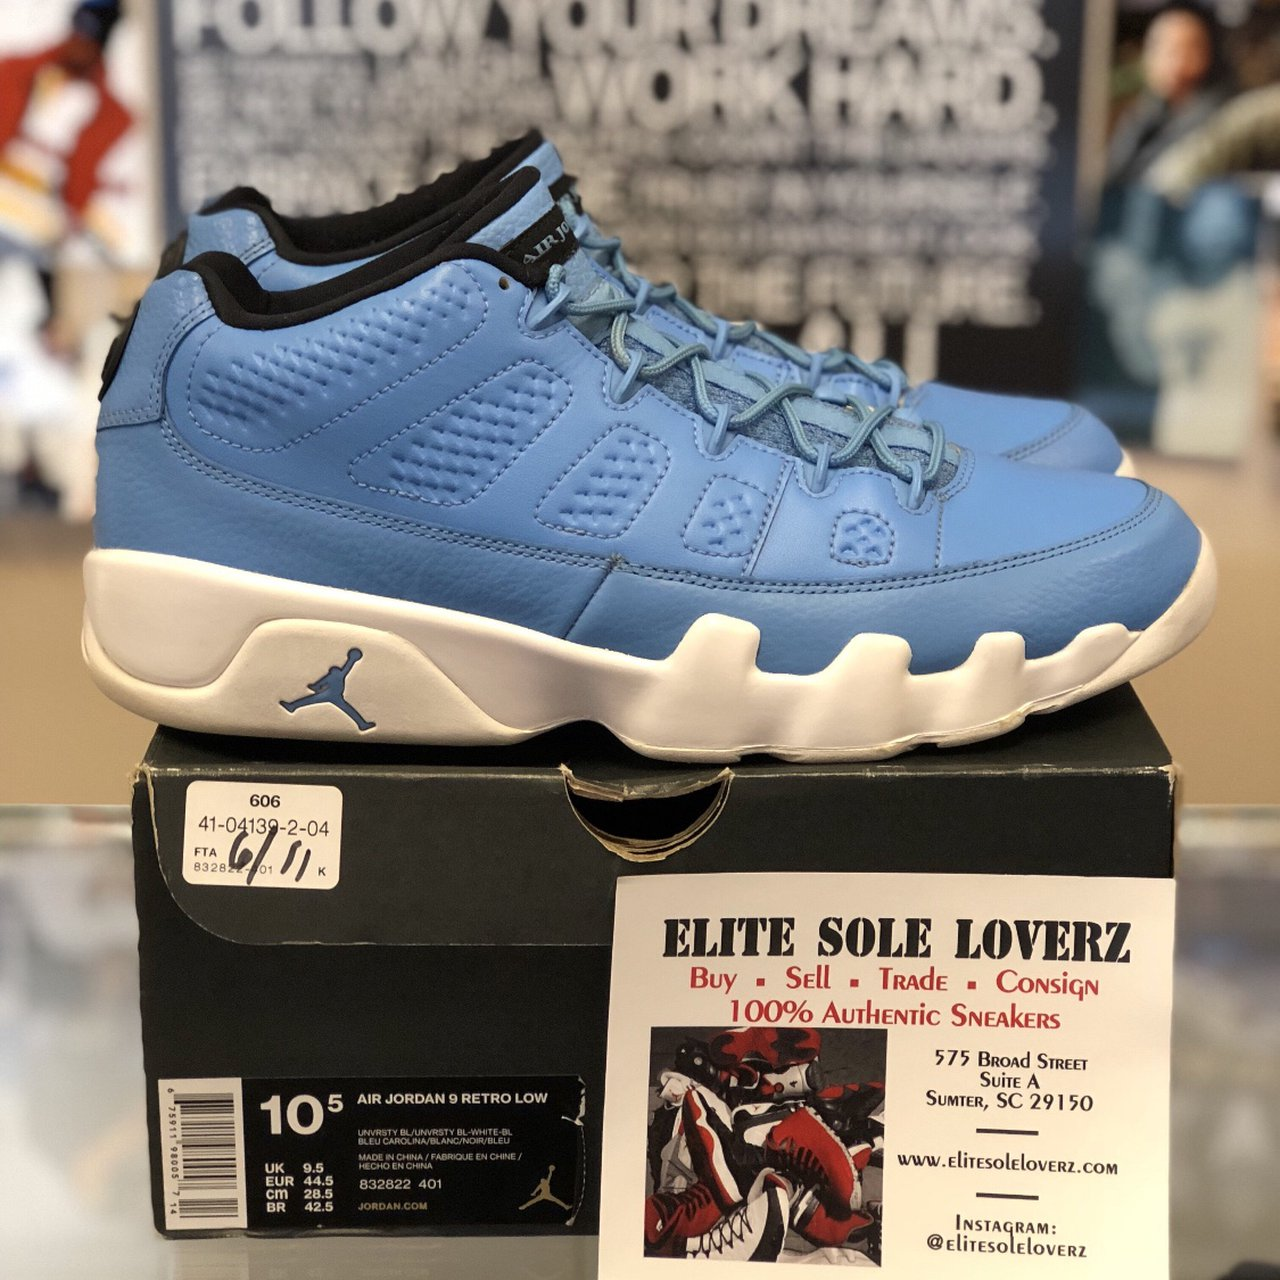 lowest price 0acf1 20761 ... amazon air jordan 9 low pantone size 10.5 pre owned comes with og depop  96cf6 13ce6